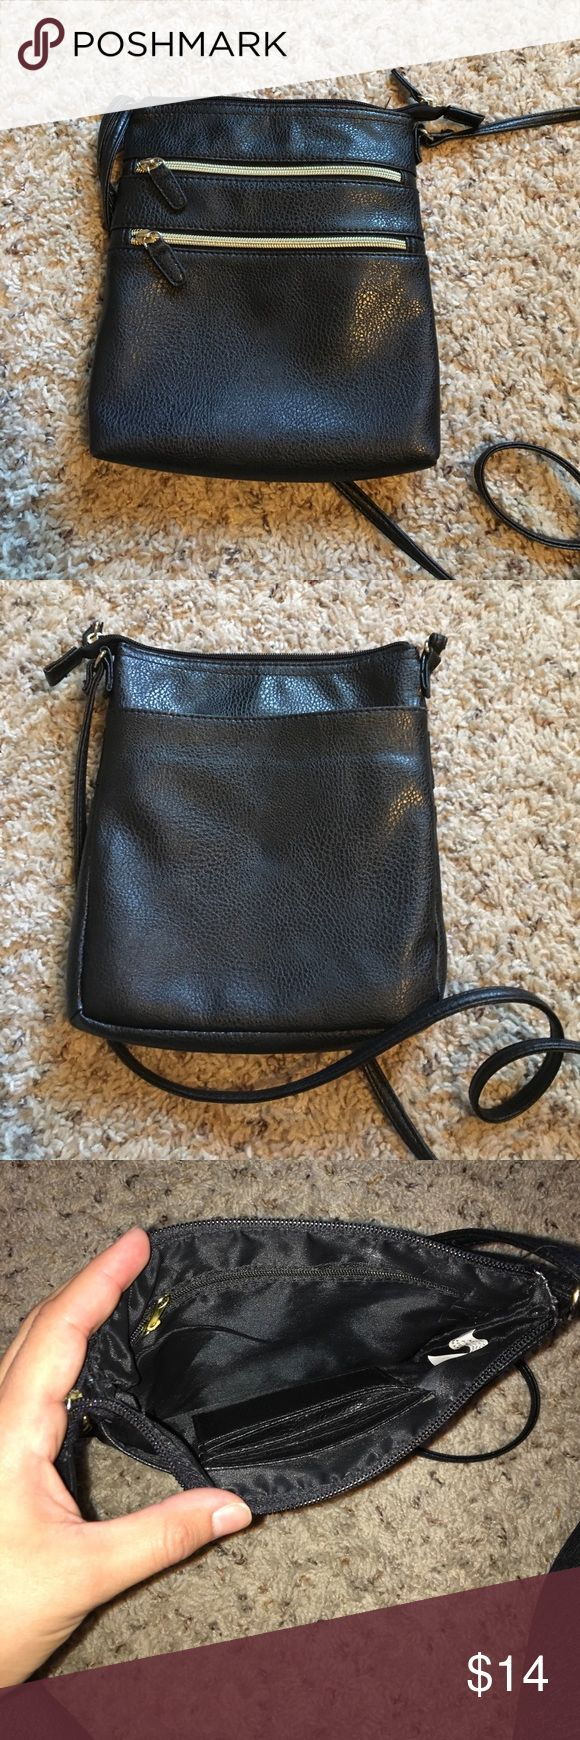 "Black small cross body purse Has two front pockets with working zippers, one small zipper pocket inside, & 3 card holder slots inside, as well with a open pouch in back for extra space :) one of my favorite, just have so many other bags now!:( great small bag for work or festivals. Price set for offers, purchased at Target believe the brand name is Merona . Size is 9""X7"" Bags Crossbody Bags"